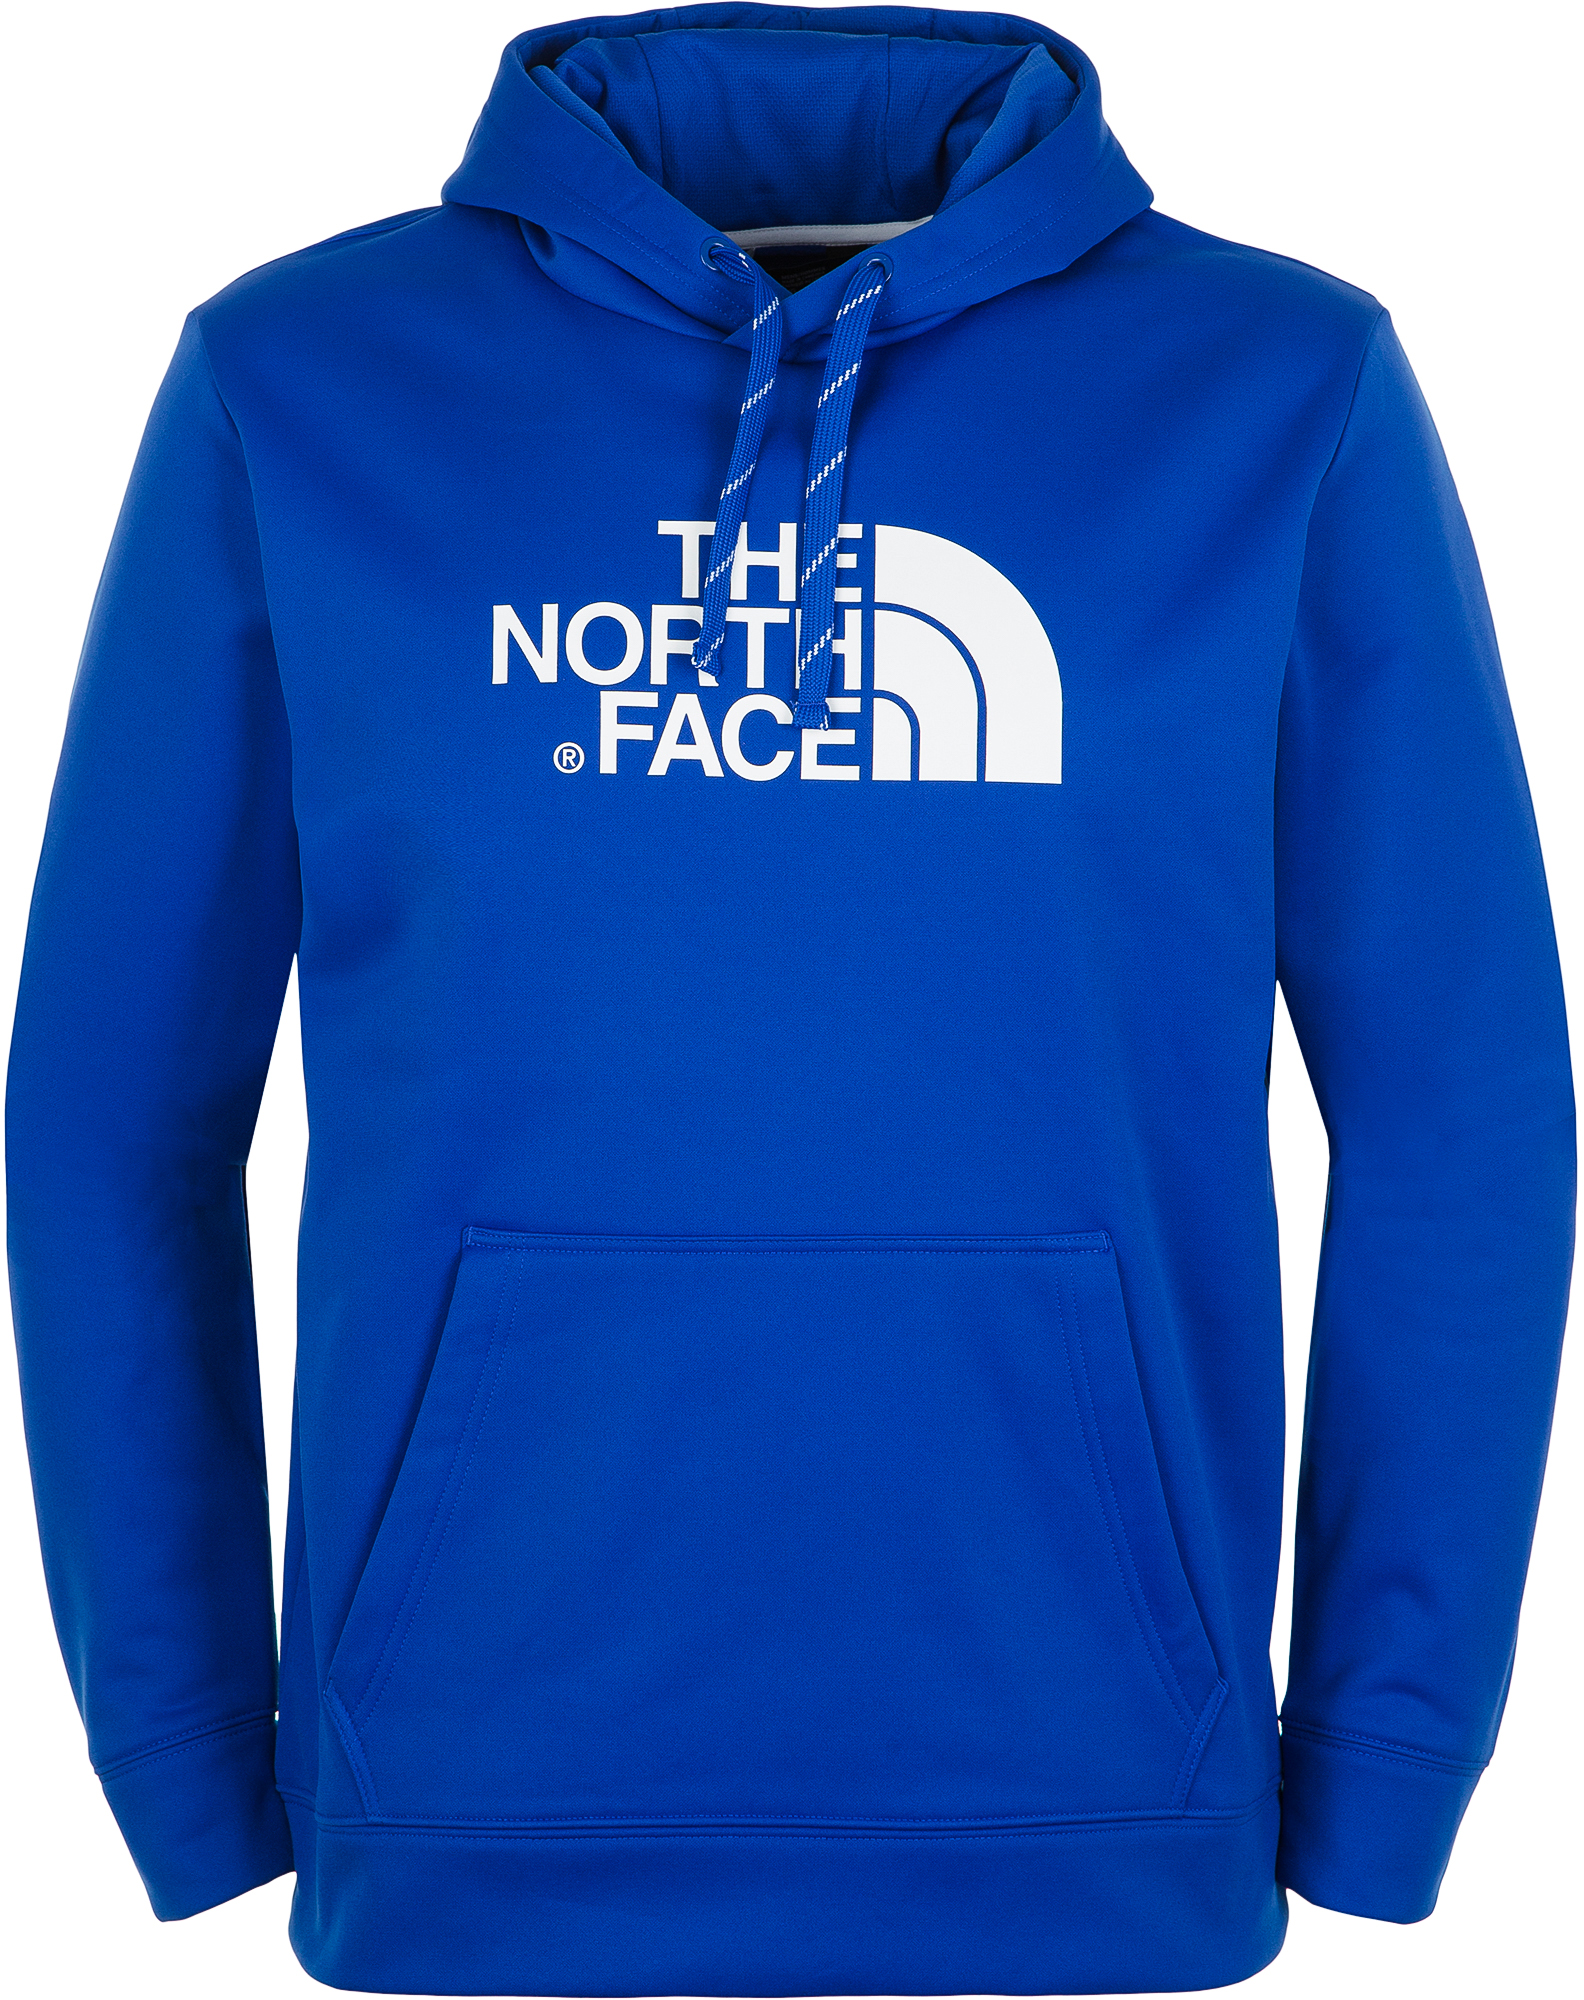 The North Face Худи мужская The North Face Surgent, размер 48 шапка the north face the north face surgent beanie черный lxl